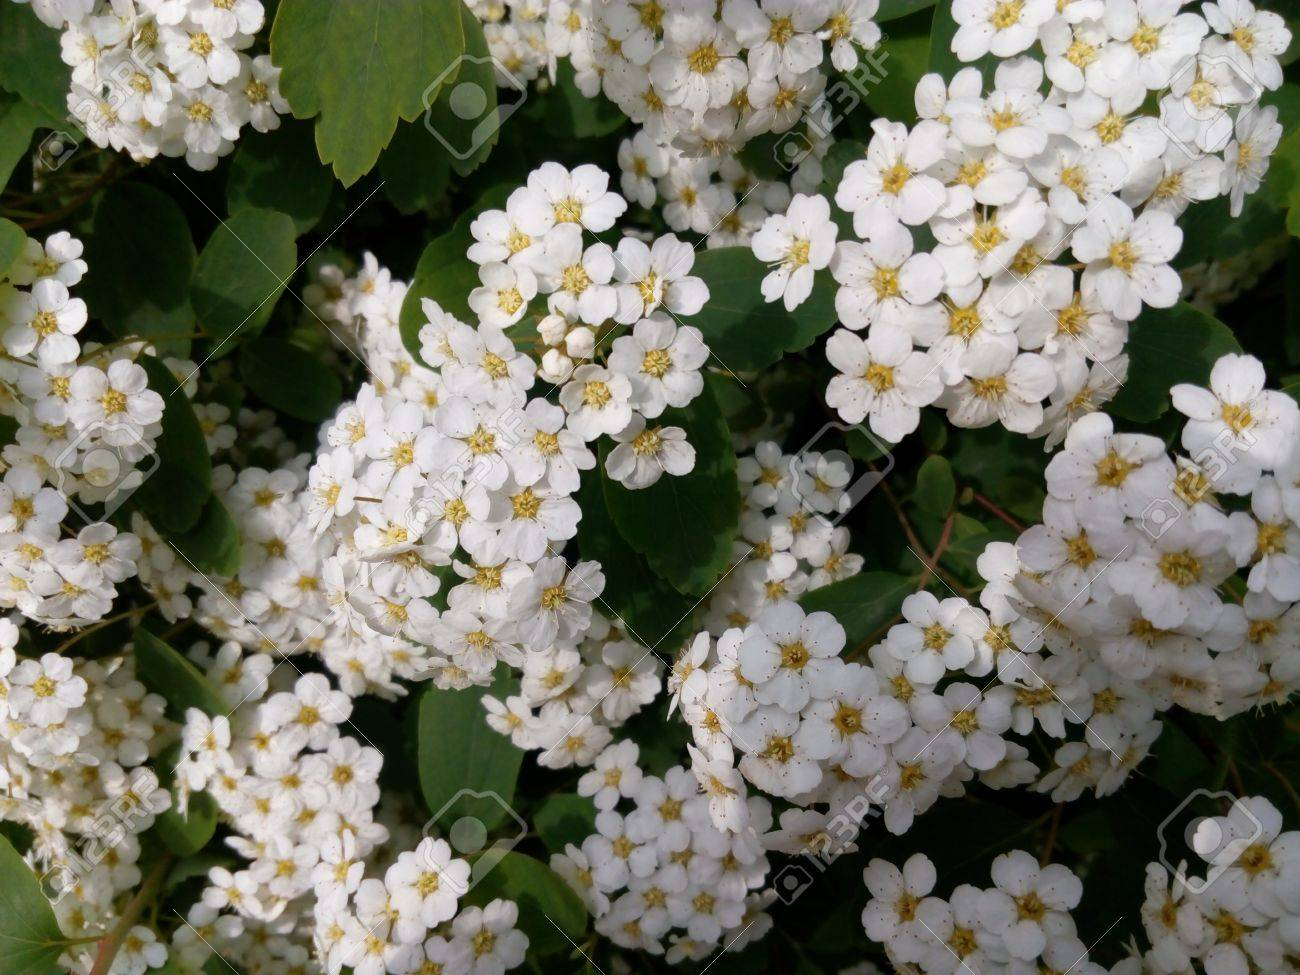 Spring Green Bush Studded With Small White Flowers Stock Photo